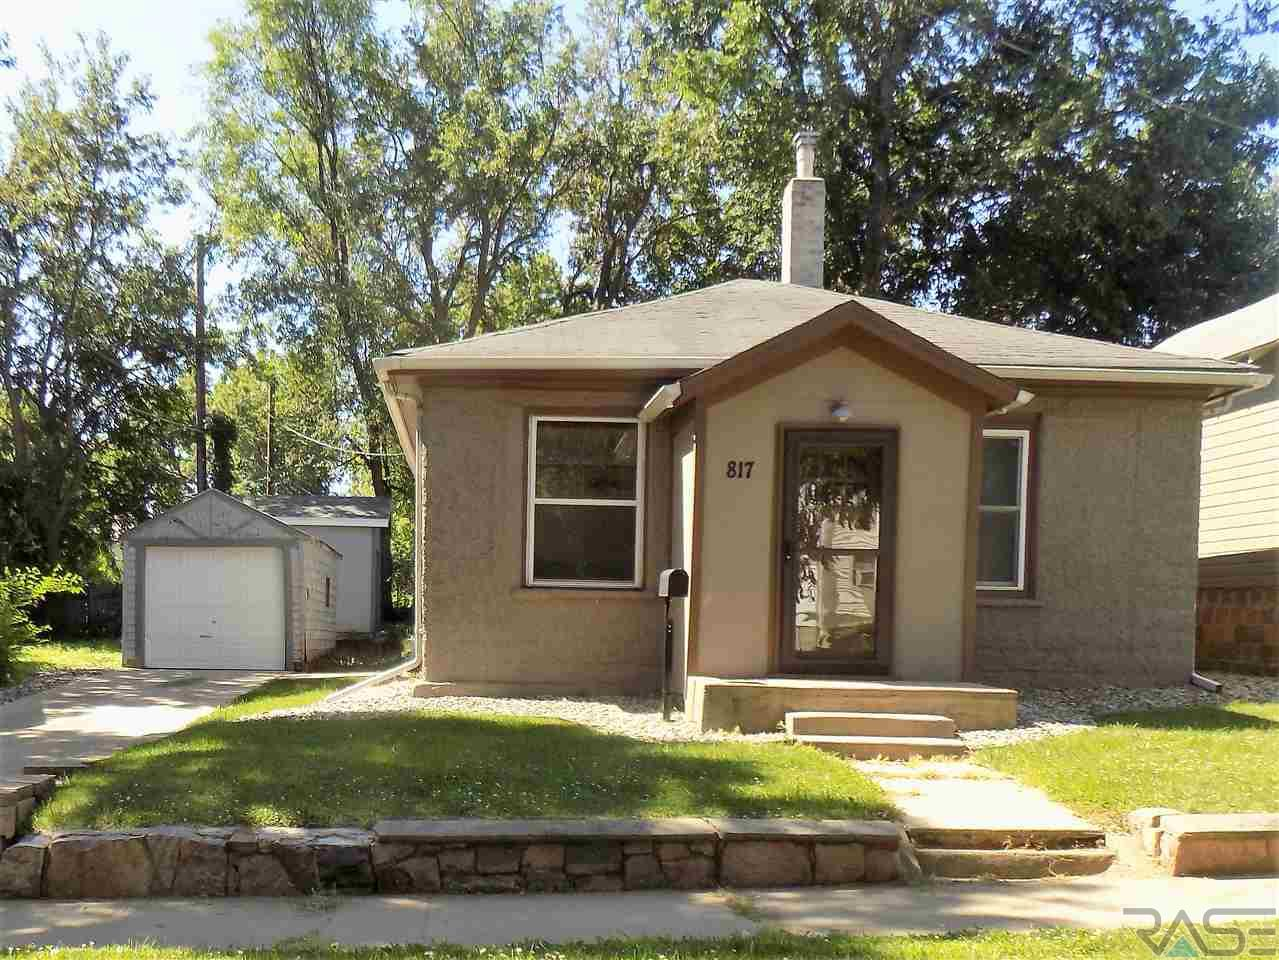 817 W 2nd St, Sioux Falls, SD 57104